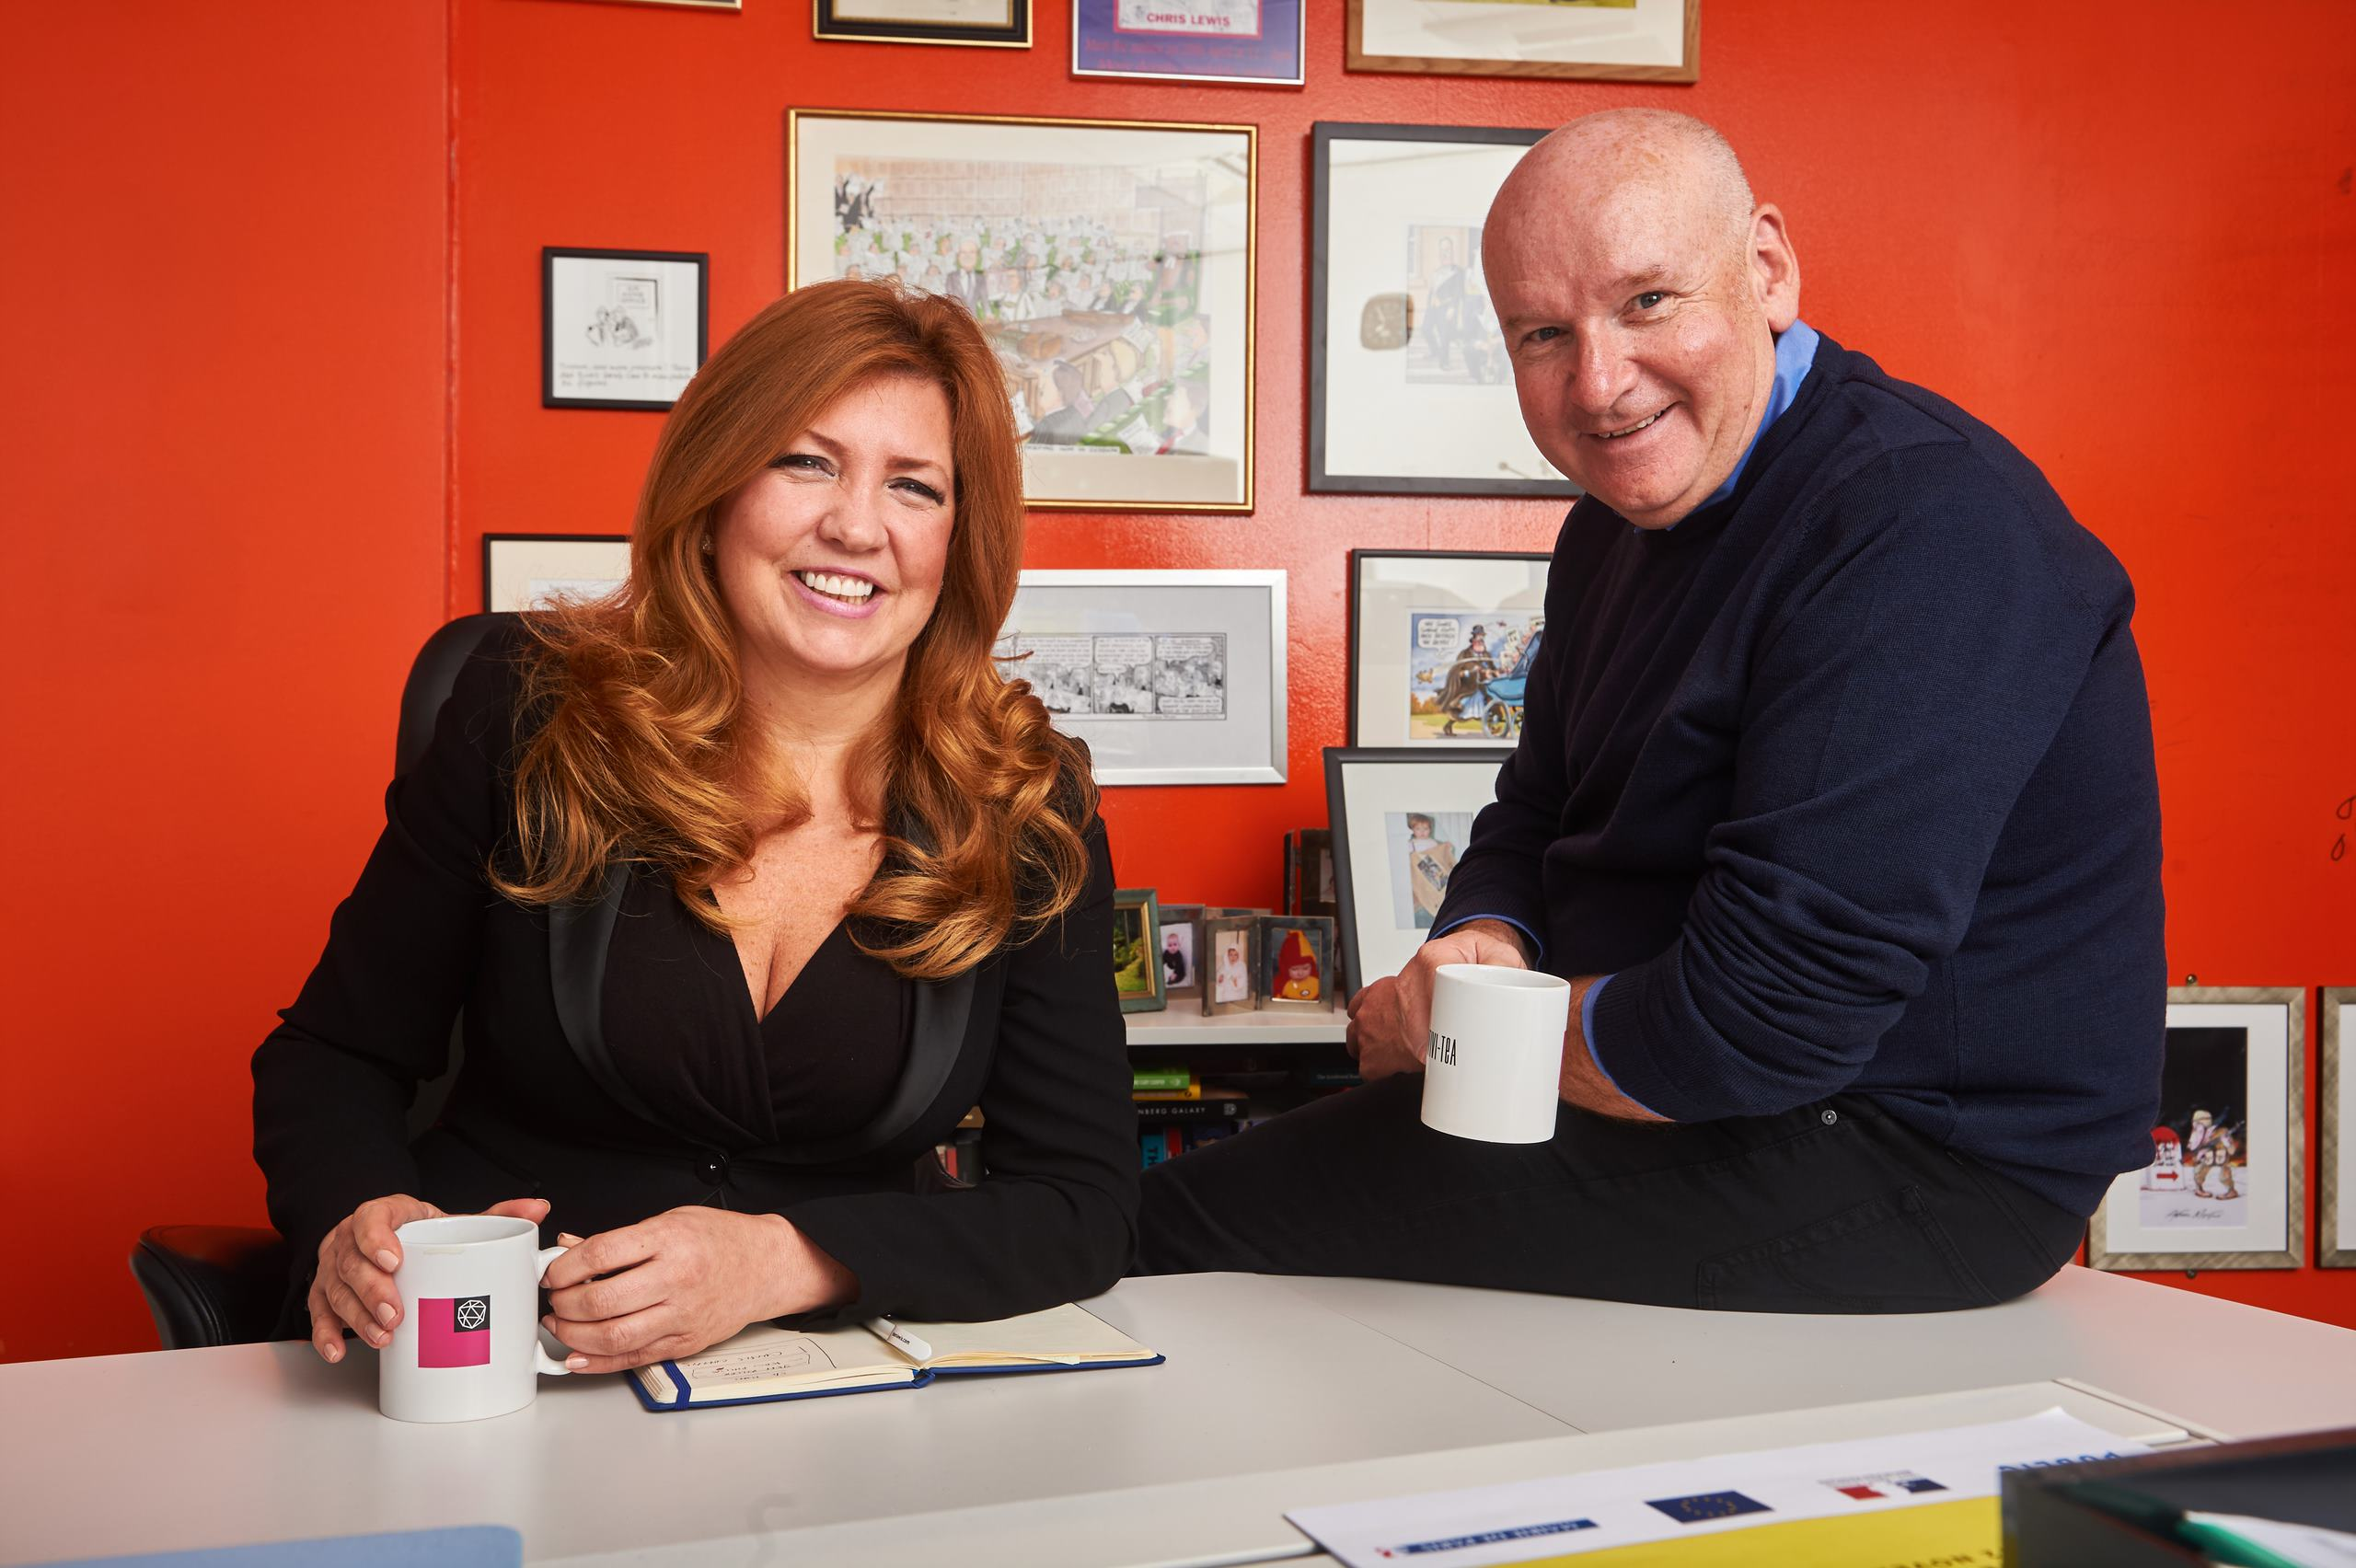 Dr Pippa Malmgren and Chris Lewis